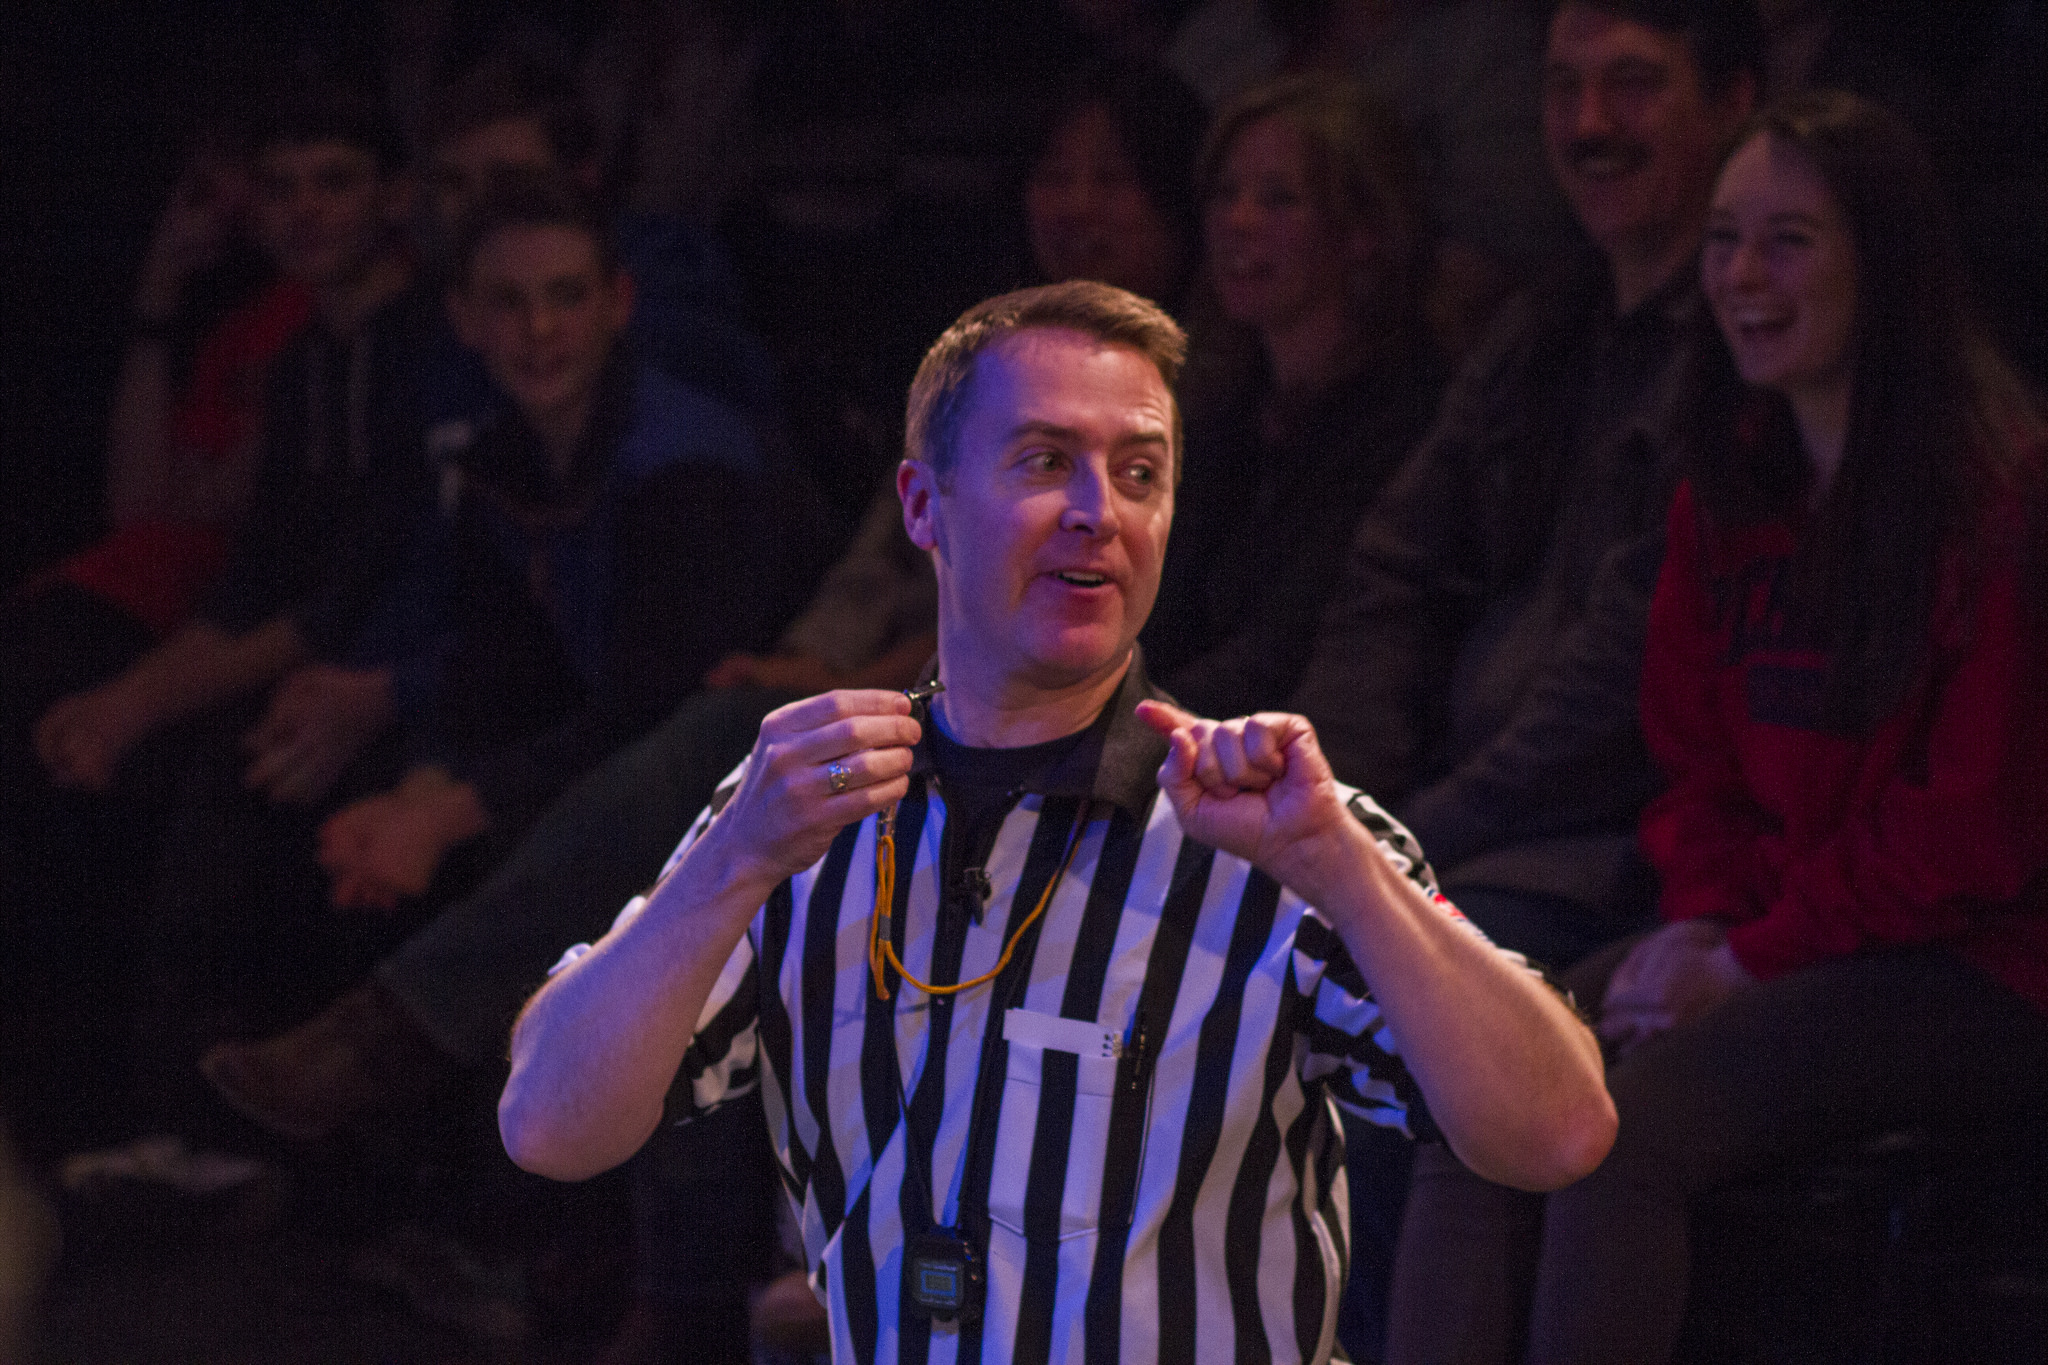 The Referee keep things moving during ComedySportz